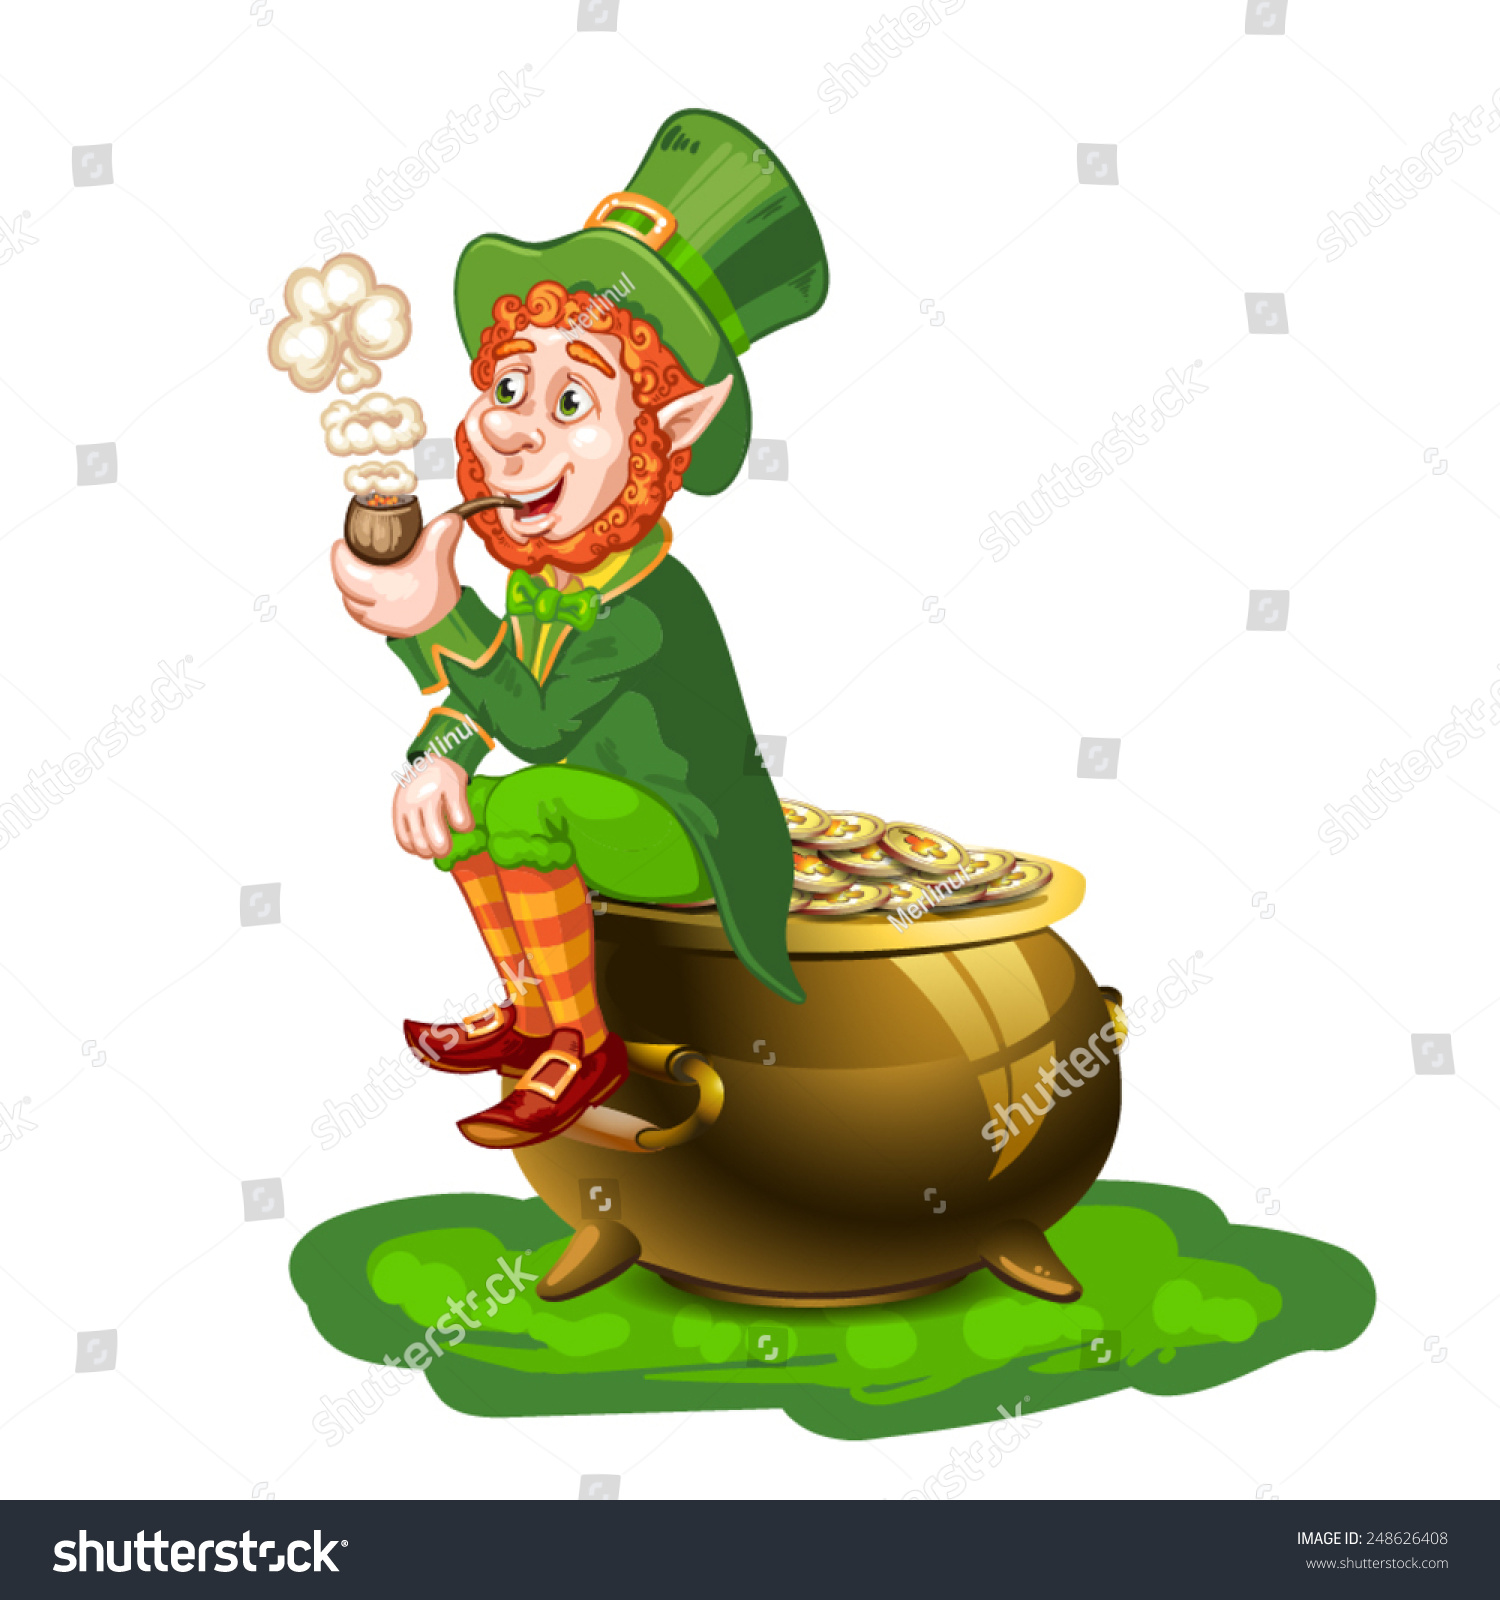 leprechaun sitting on pot gold holding stock vector 248626408